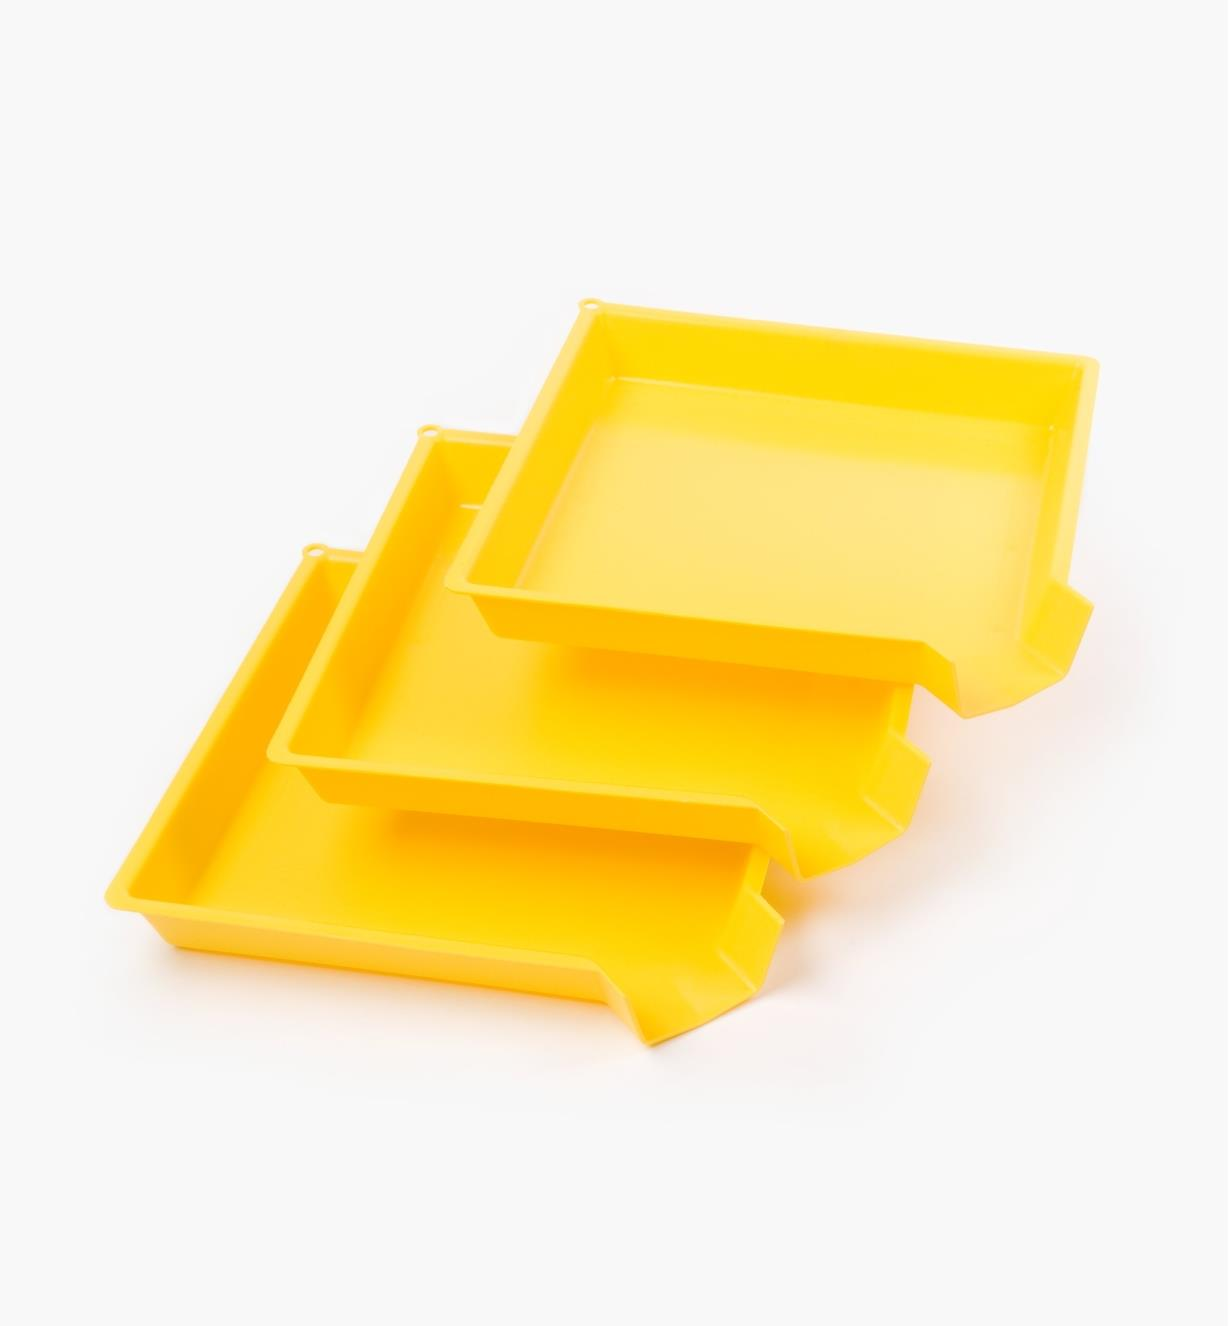 93K8412 - Sorting Trays, pkg. of 3